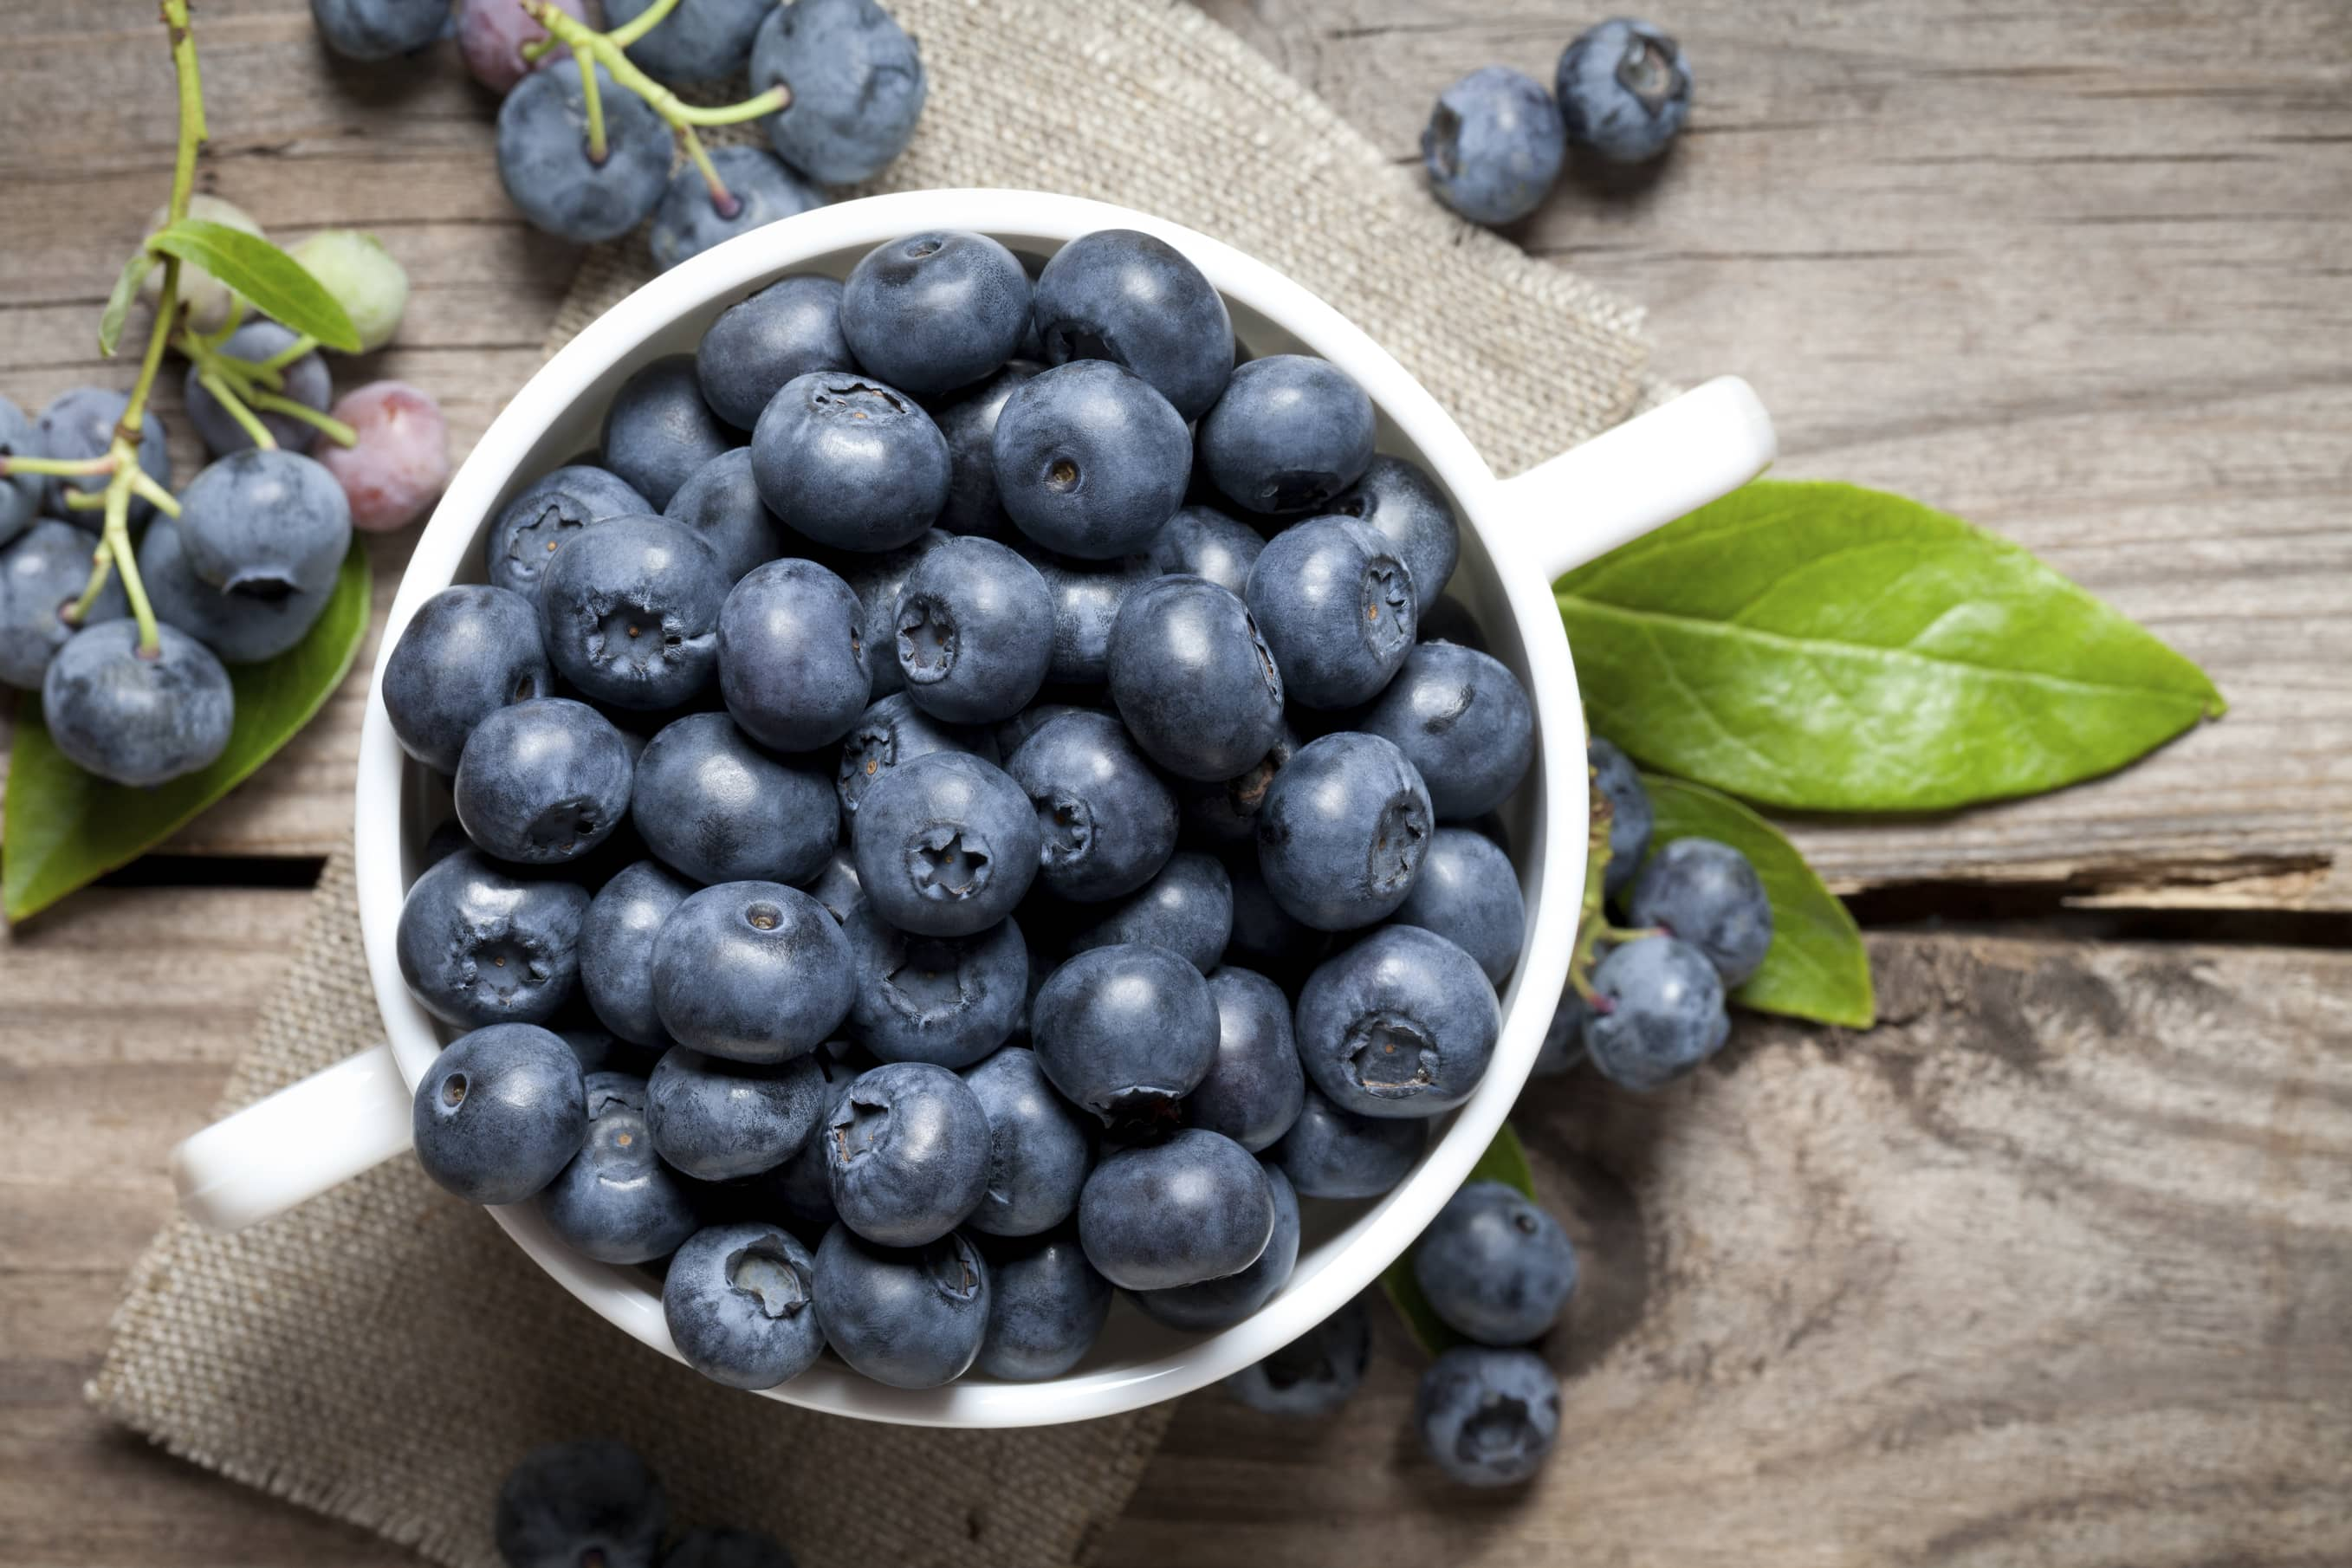 Blueberries to reduce blood pressure